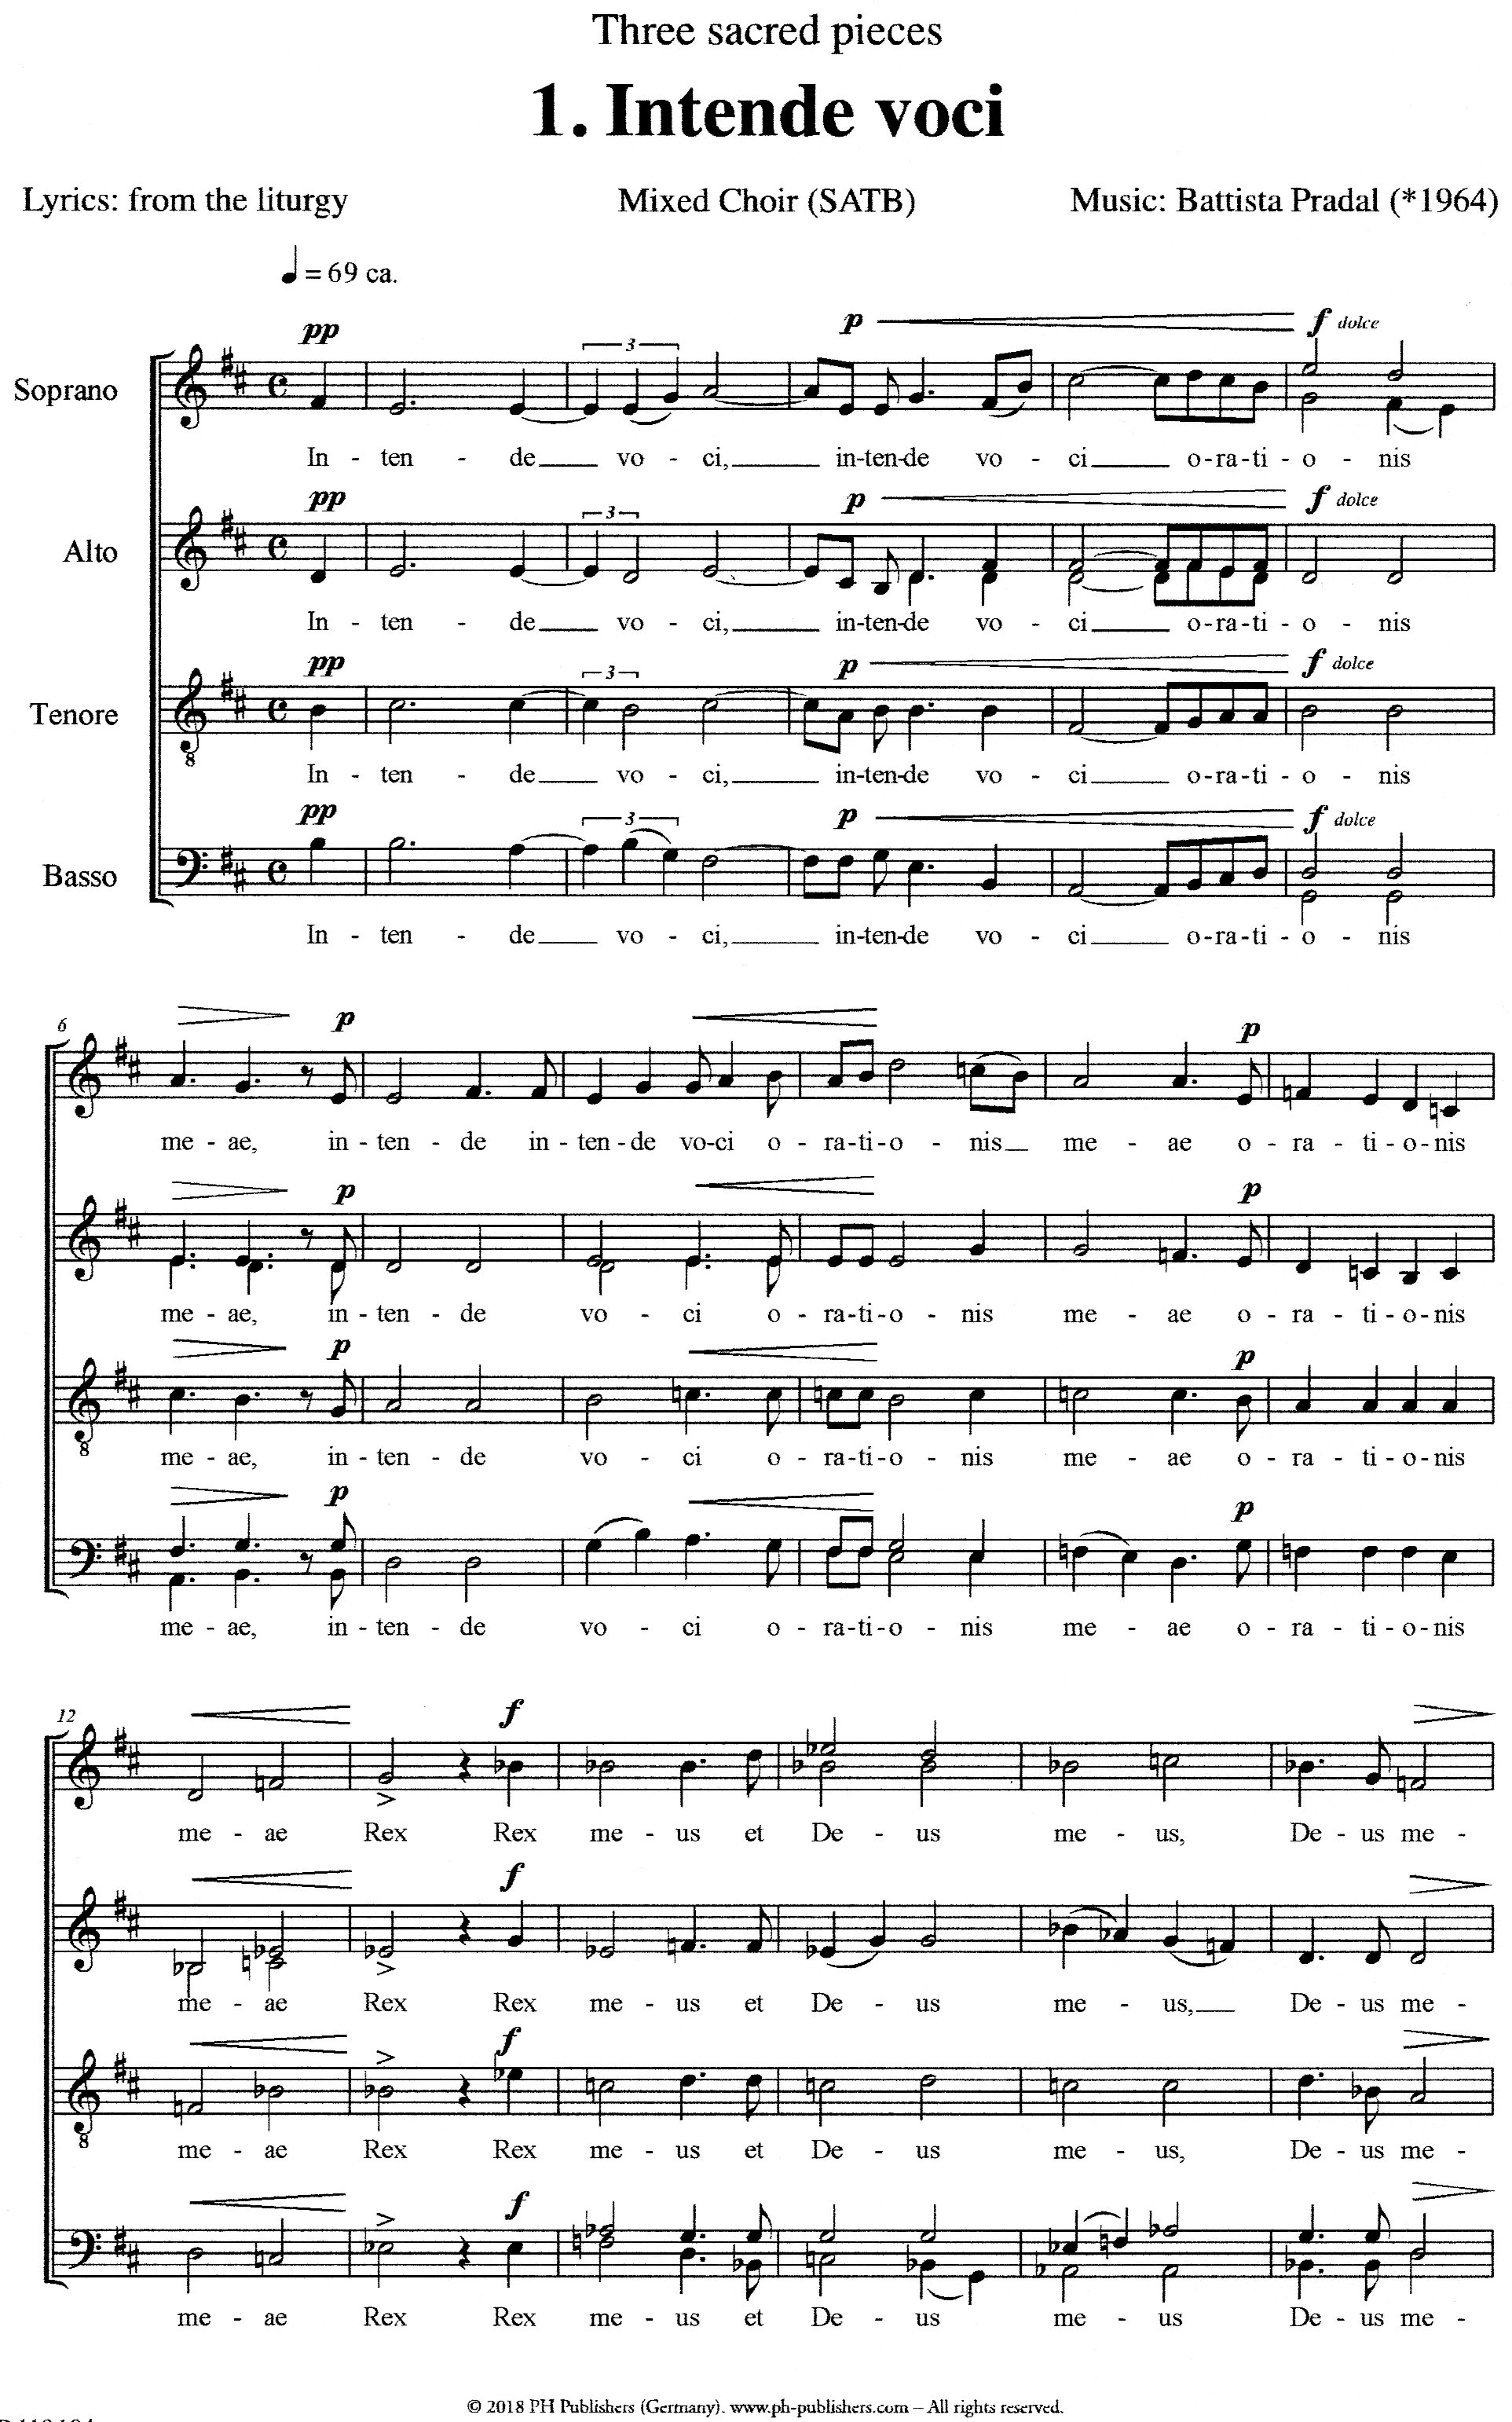 Intende voci - Show sample score